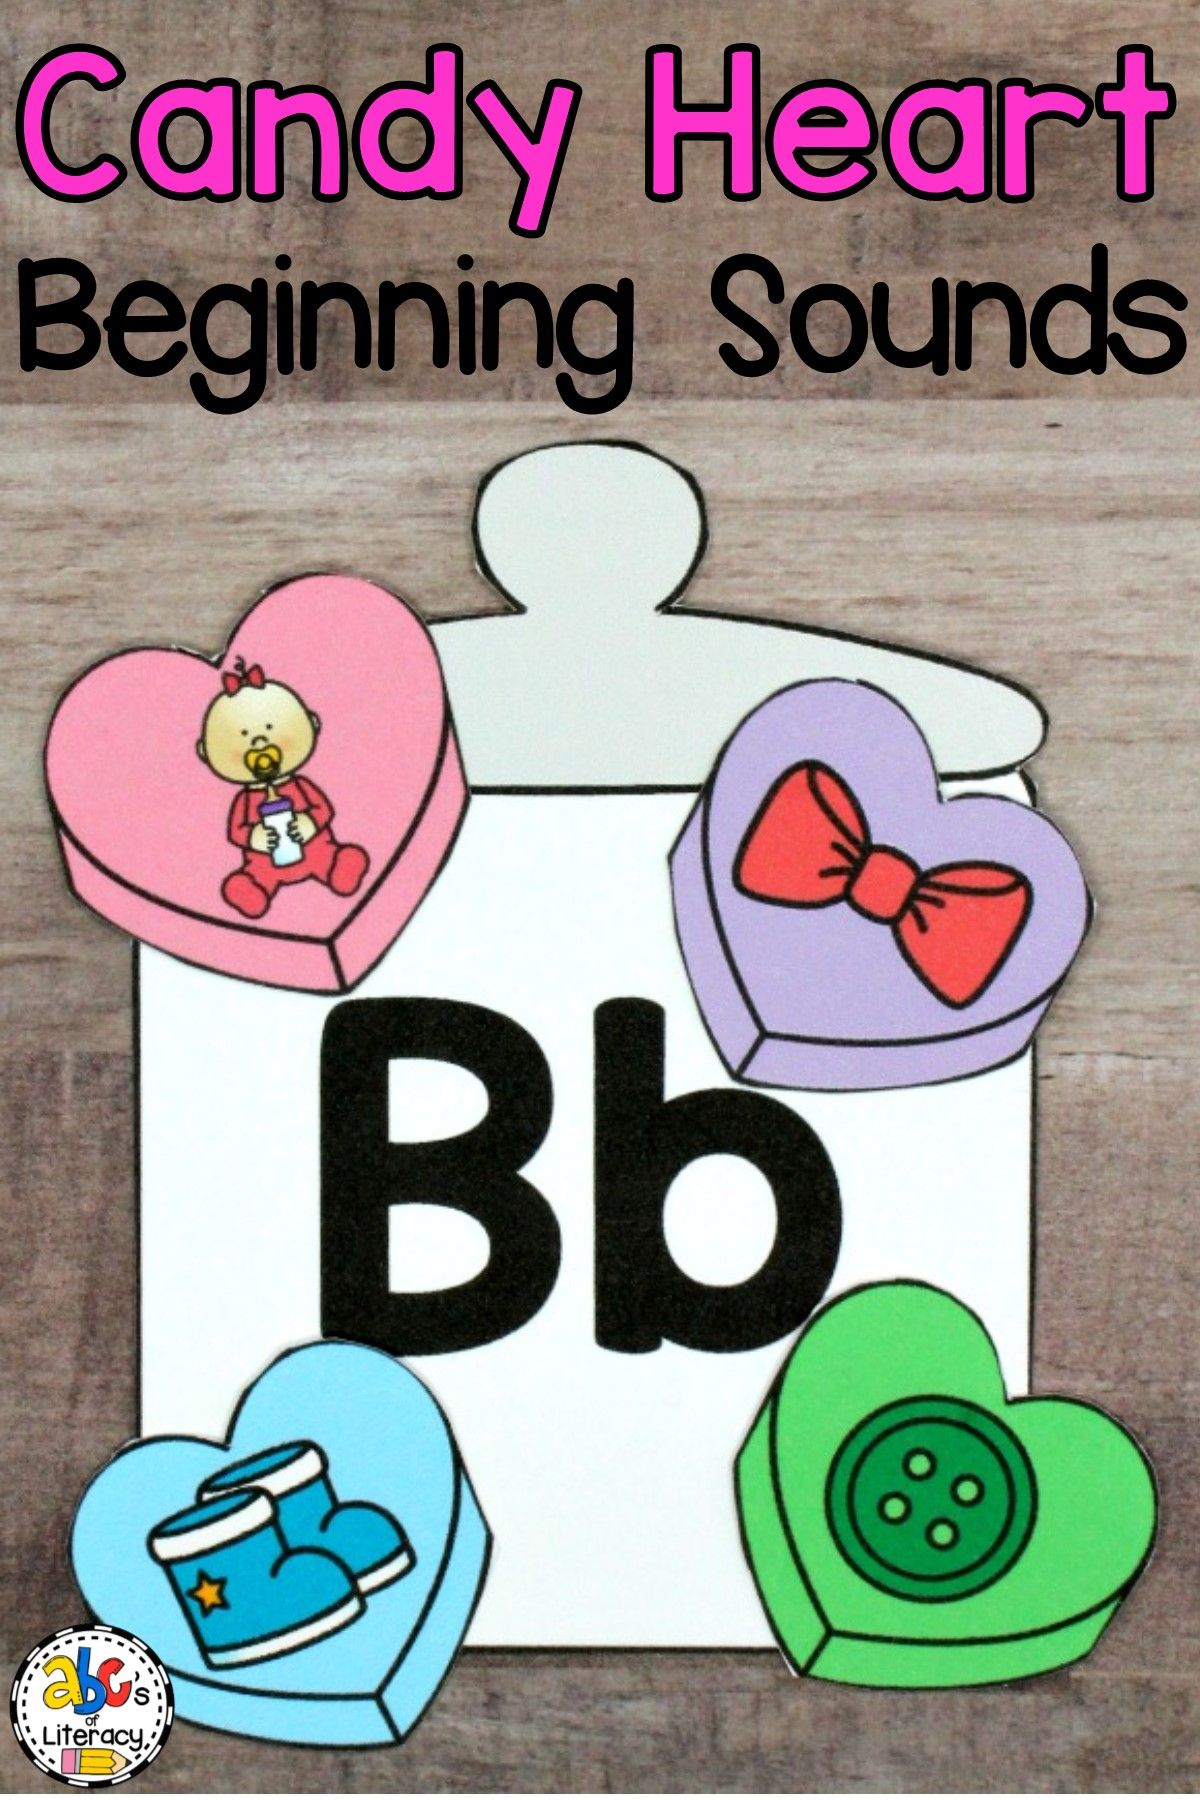 Candy Heart Beginning Sounds Sort With Images